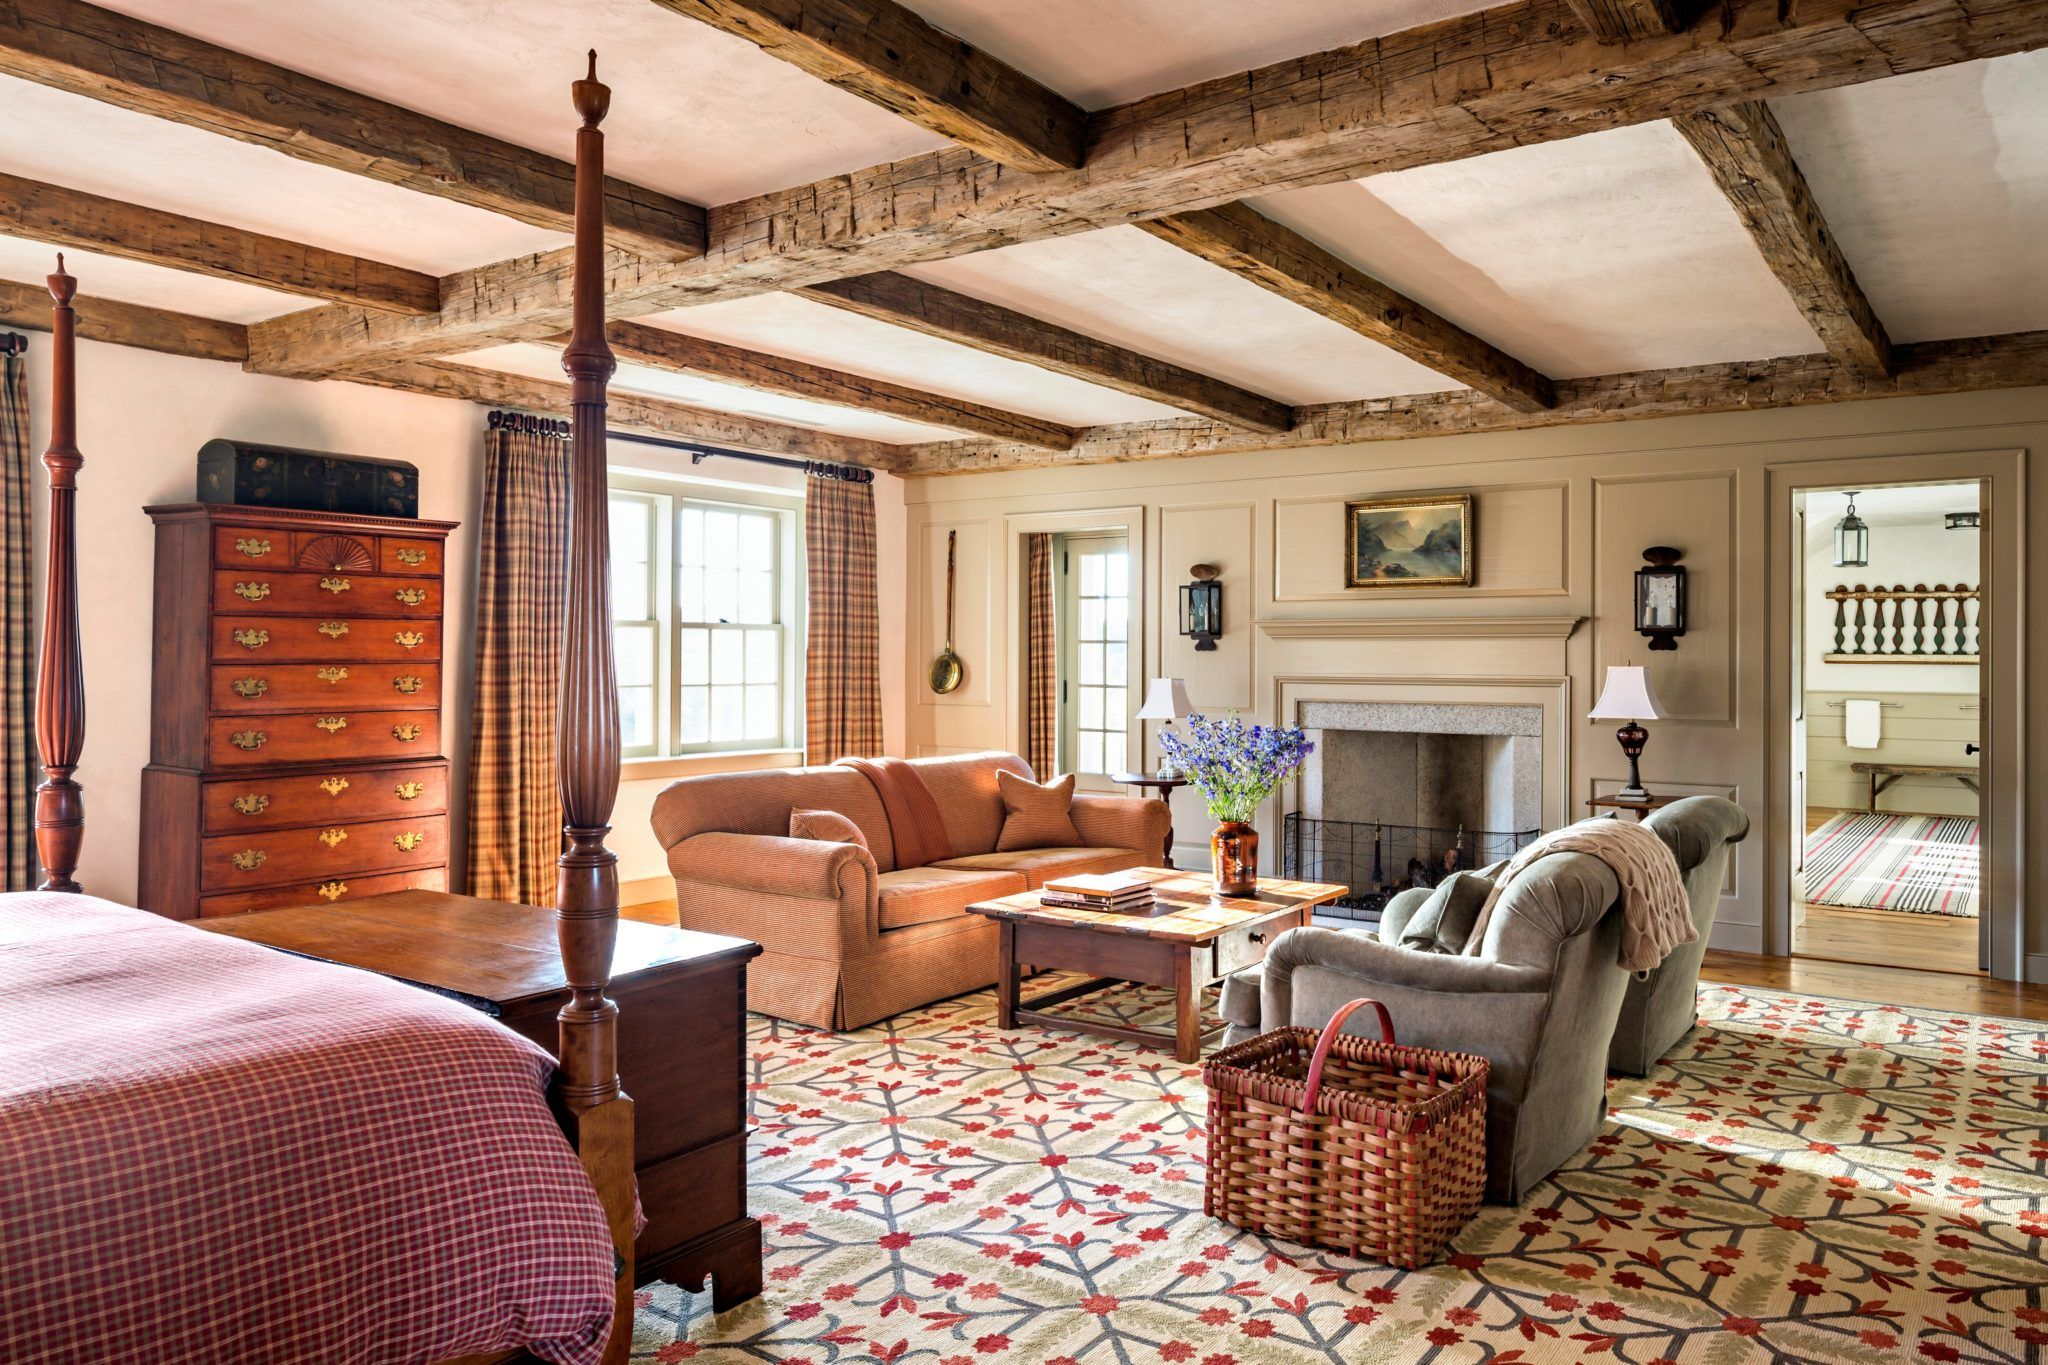 24 Cabin-Style Bedrooms Inspired by a Rustic Getaway